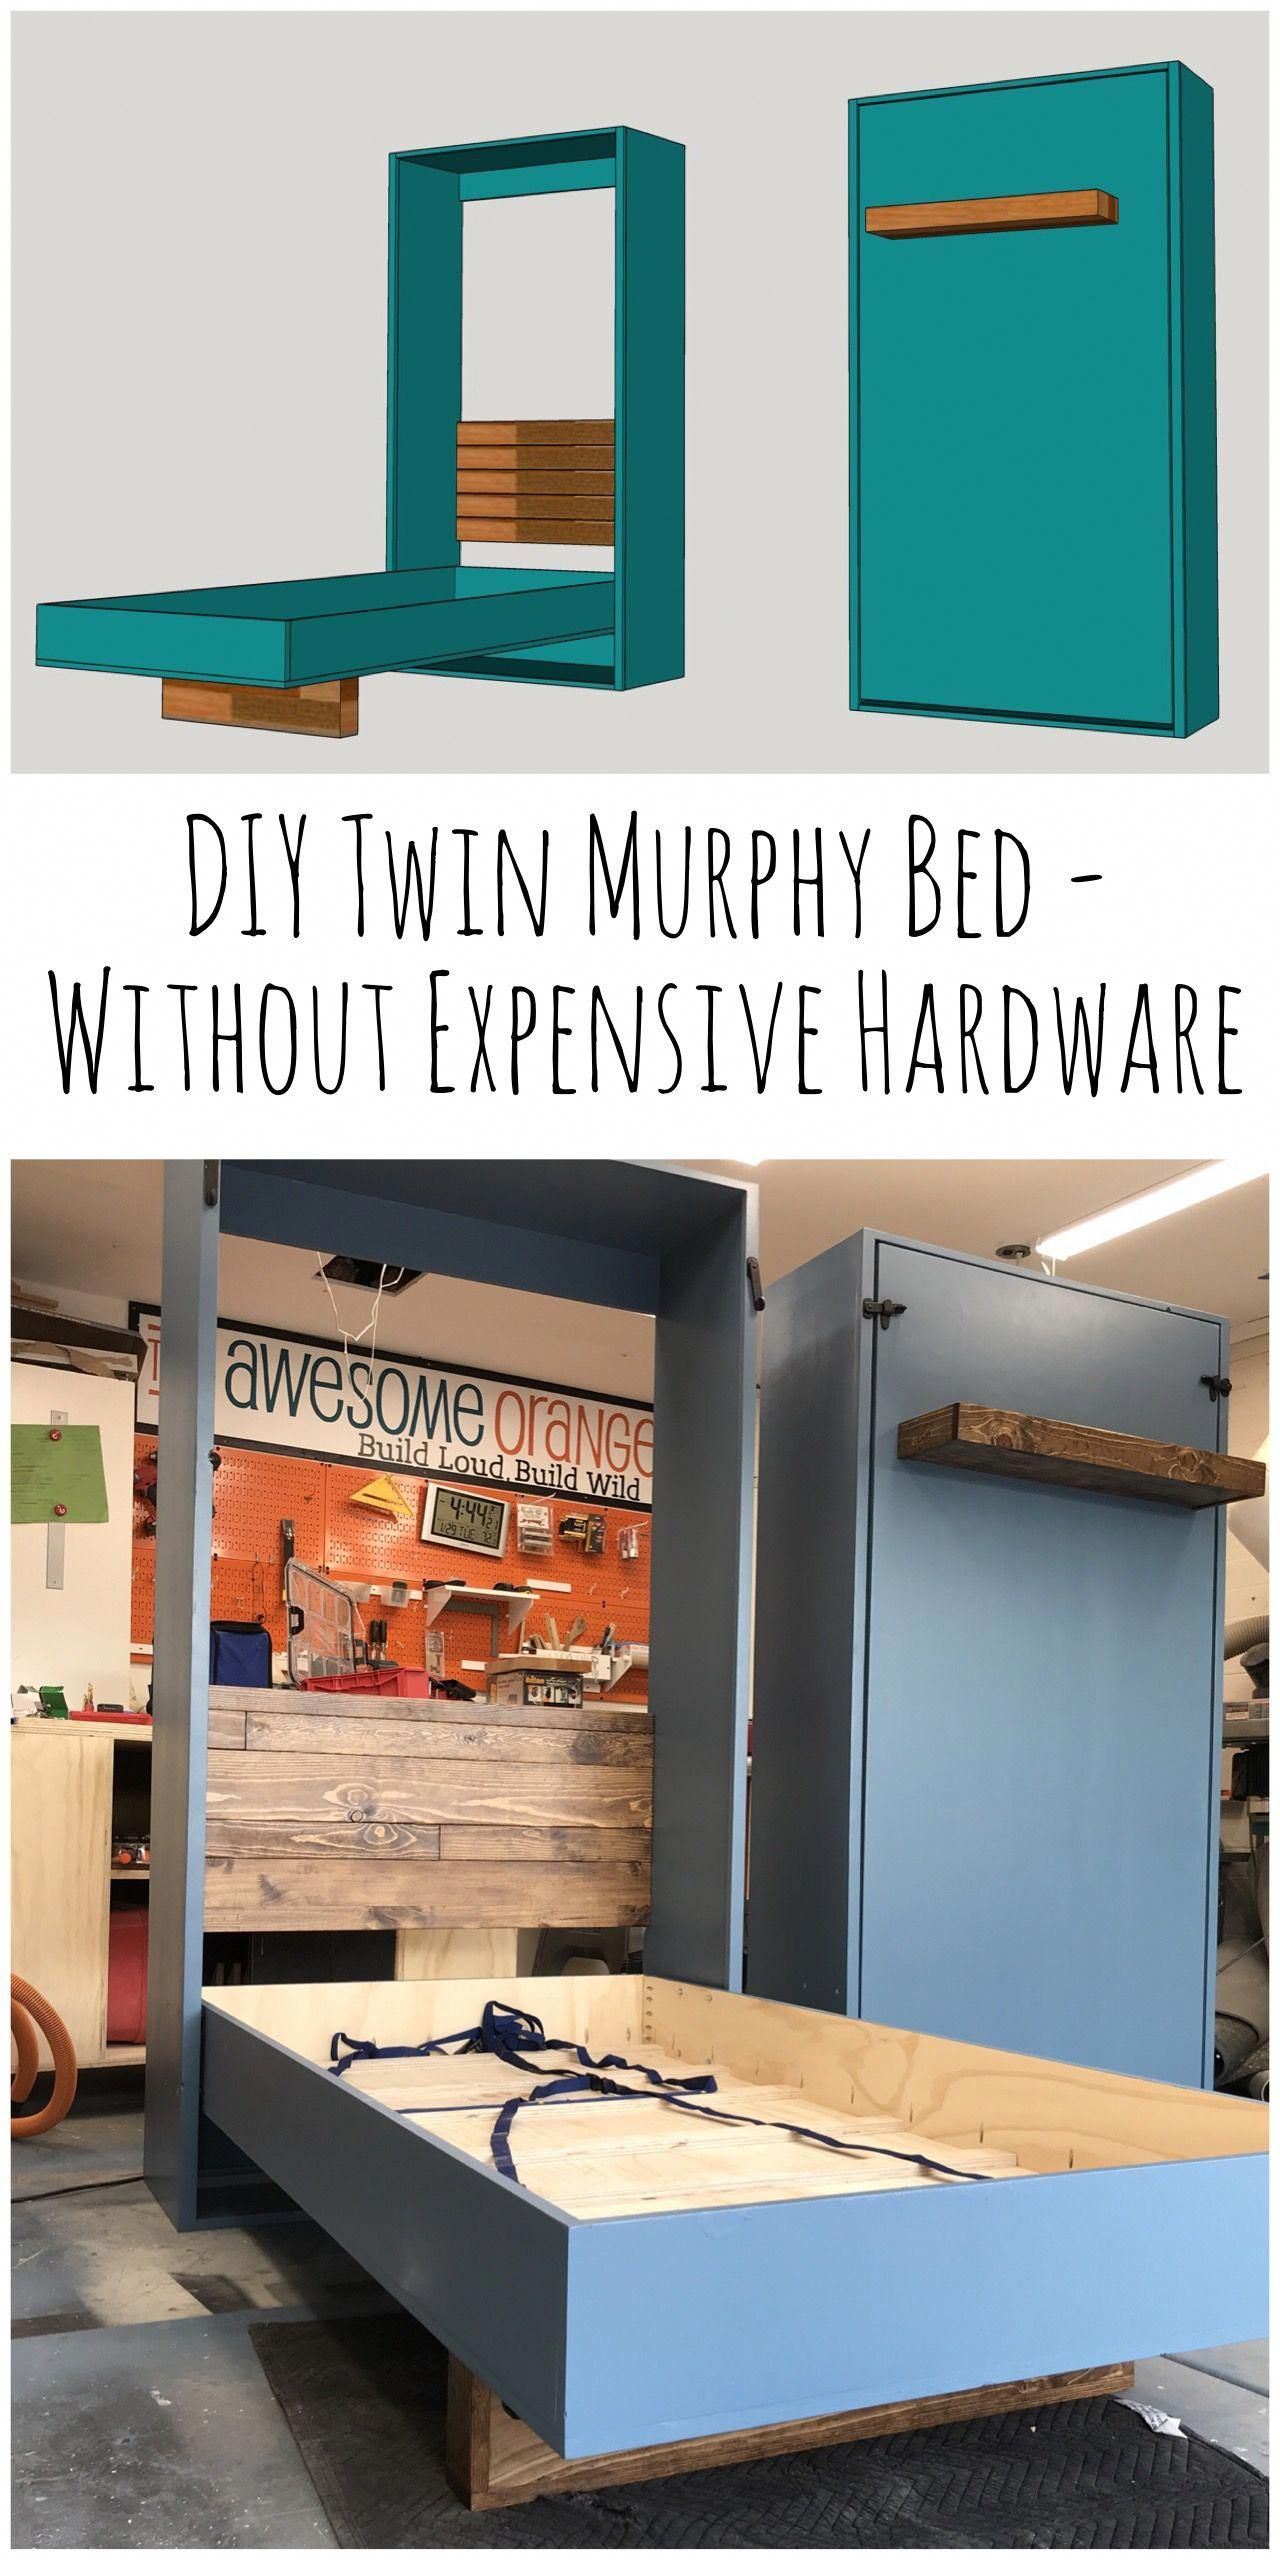 DIY Twin Murphy Beds Without Expensive Hardware — the